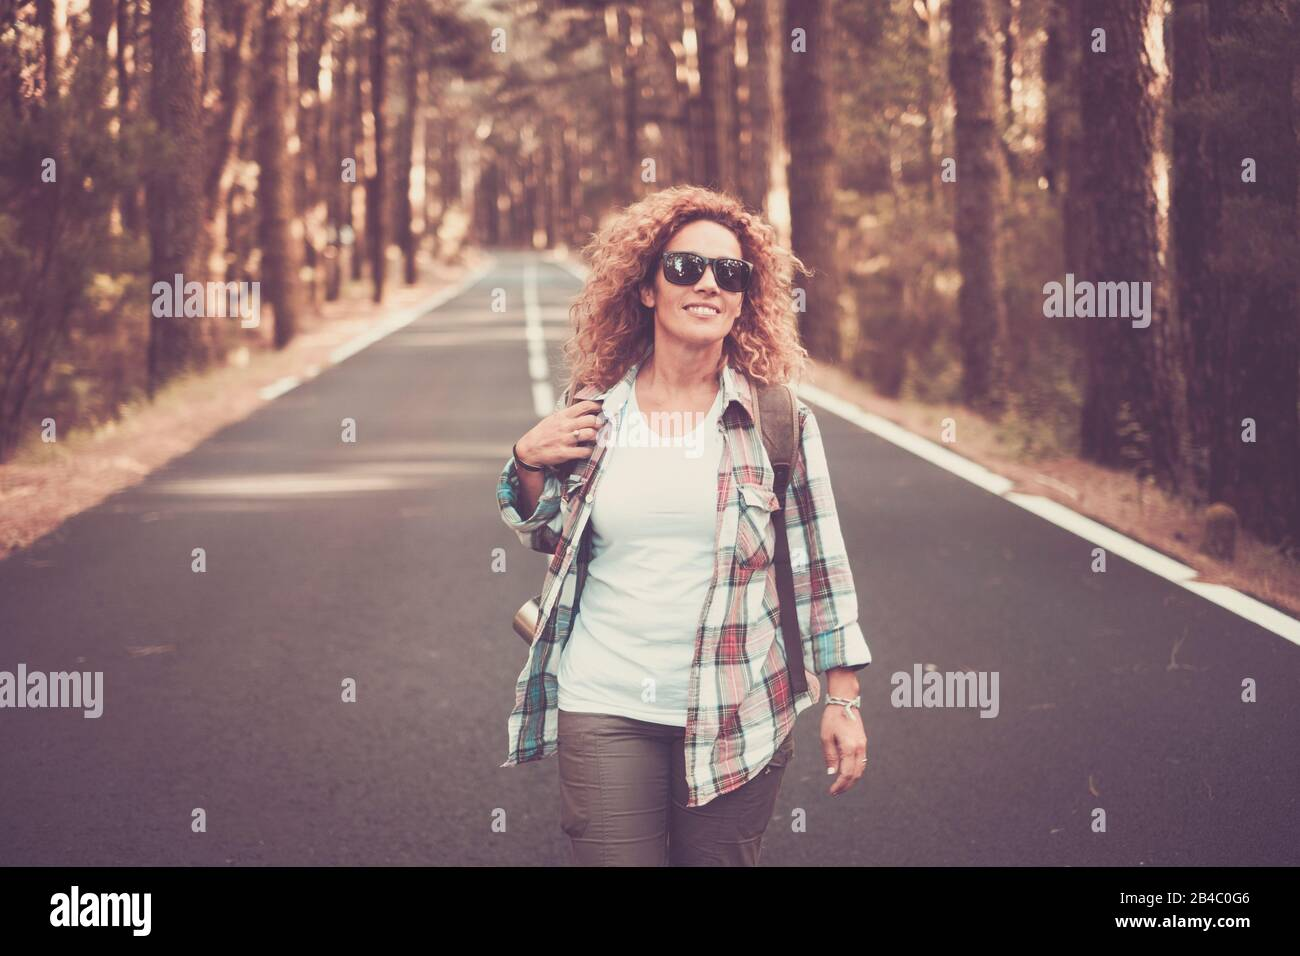 Cheerful happy free woman traveler people walking in the middle of a long road with forest and trees around - scenic travel concept - beautiful caucasian curly female enjoying the outdoor leisure activity Stock Photo